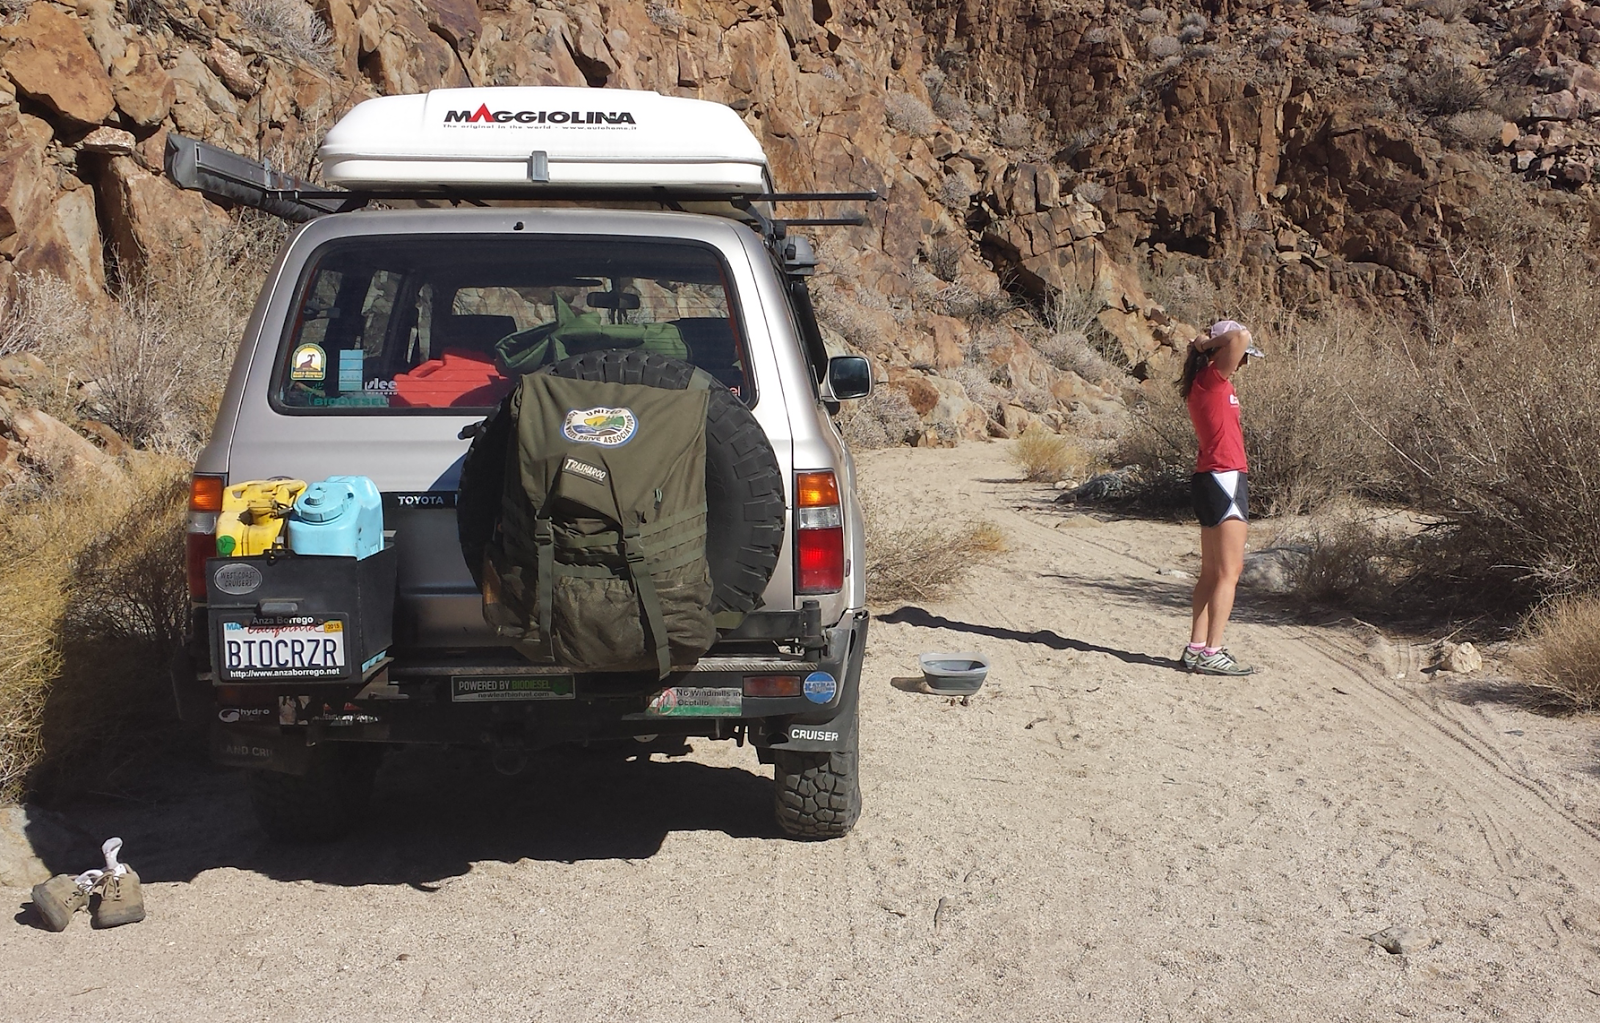 We parked the Land Cruiser and prepped for the hike up the remote canyon.